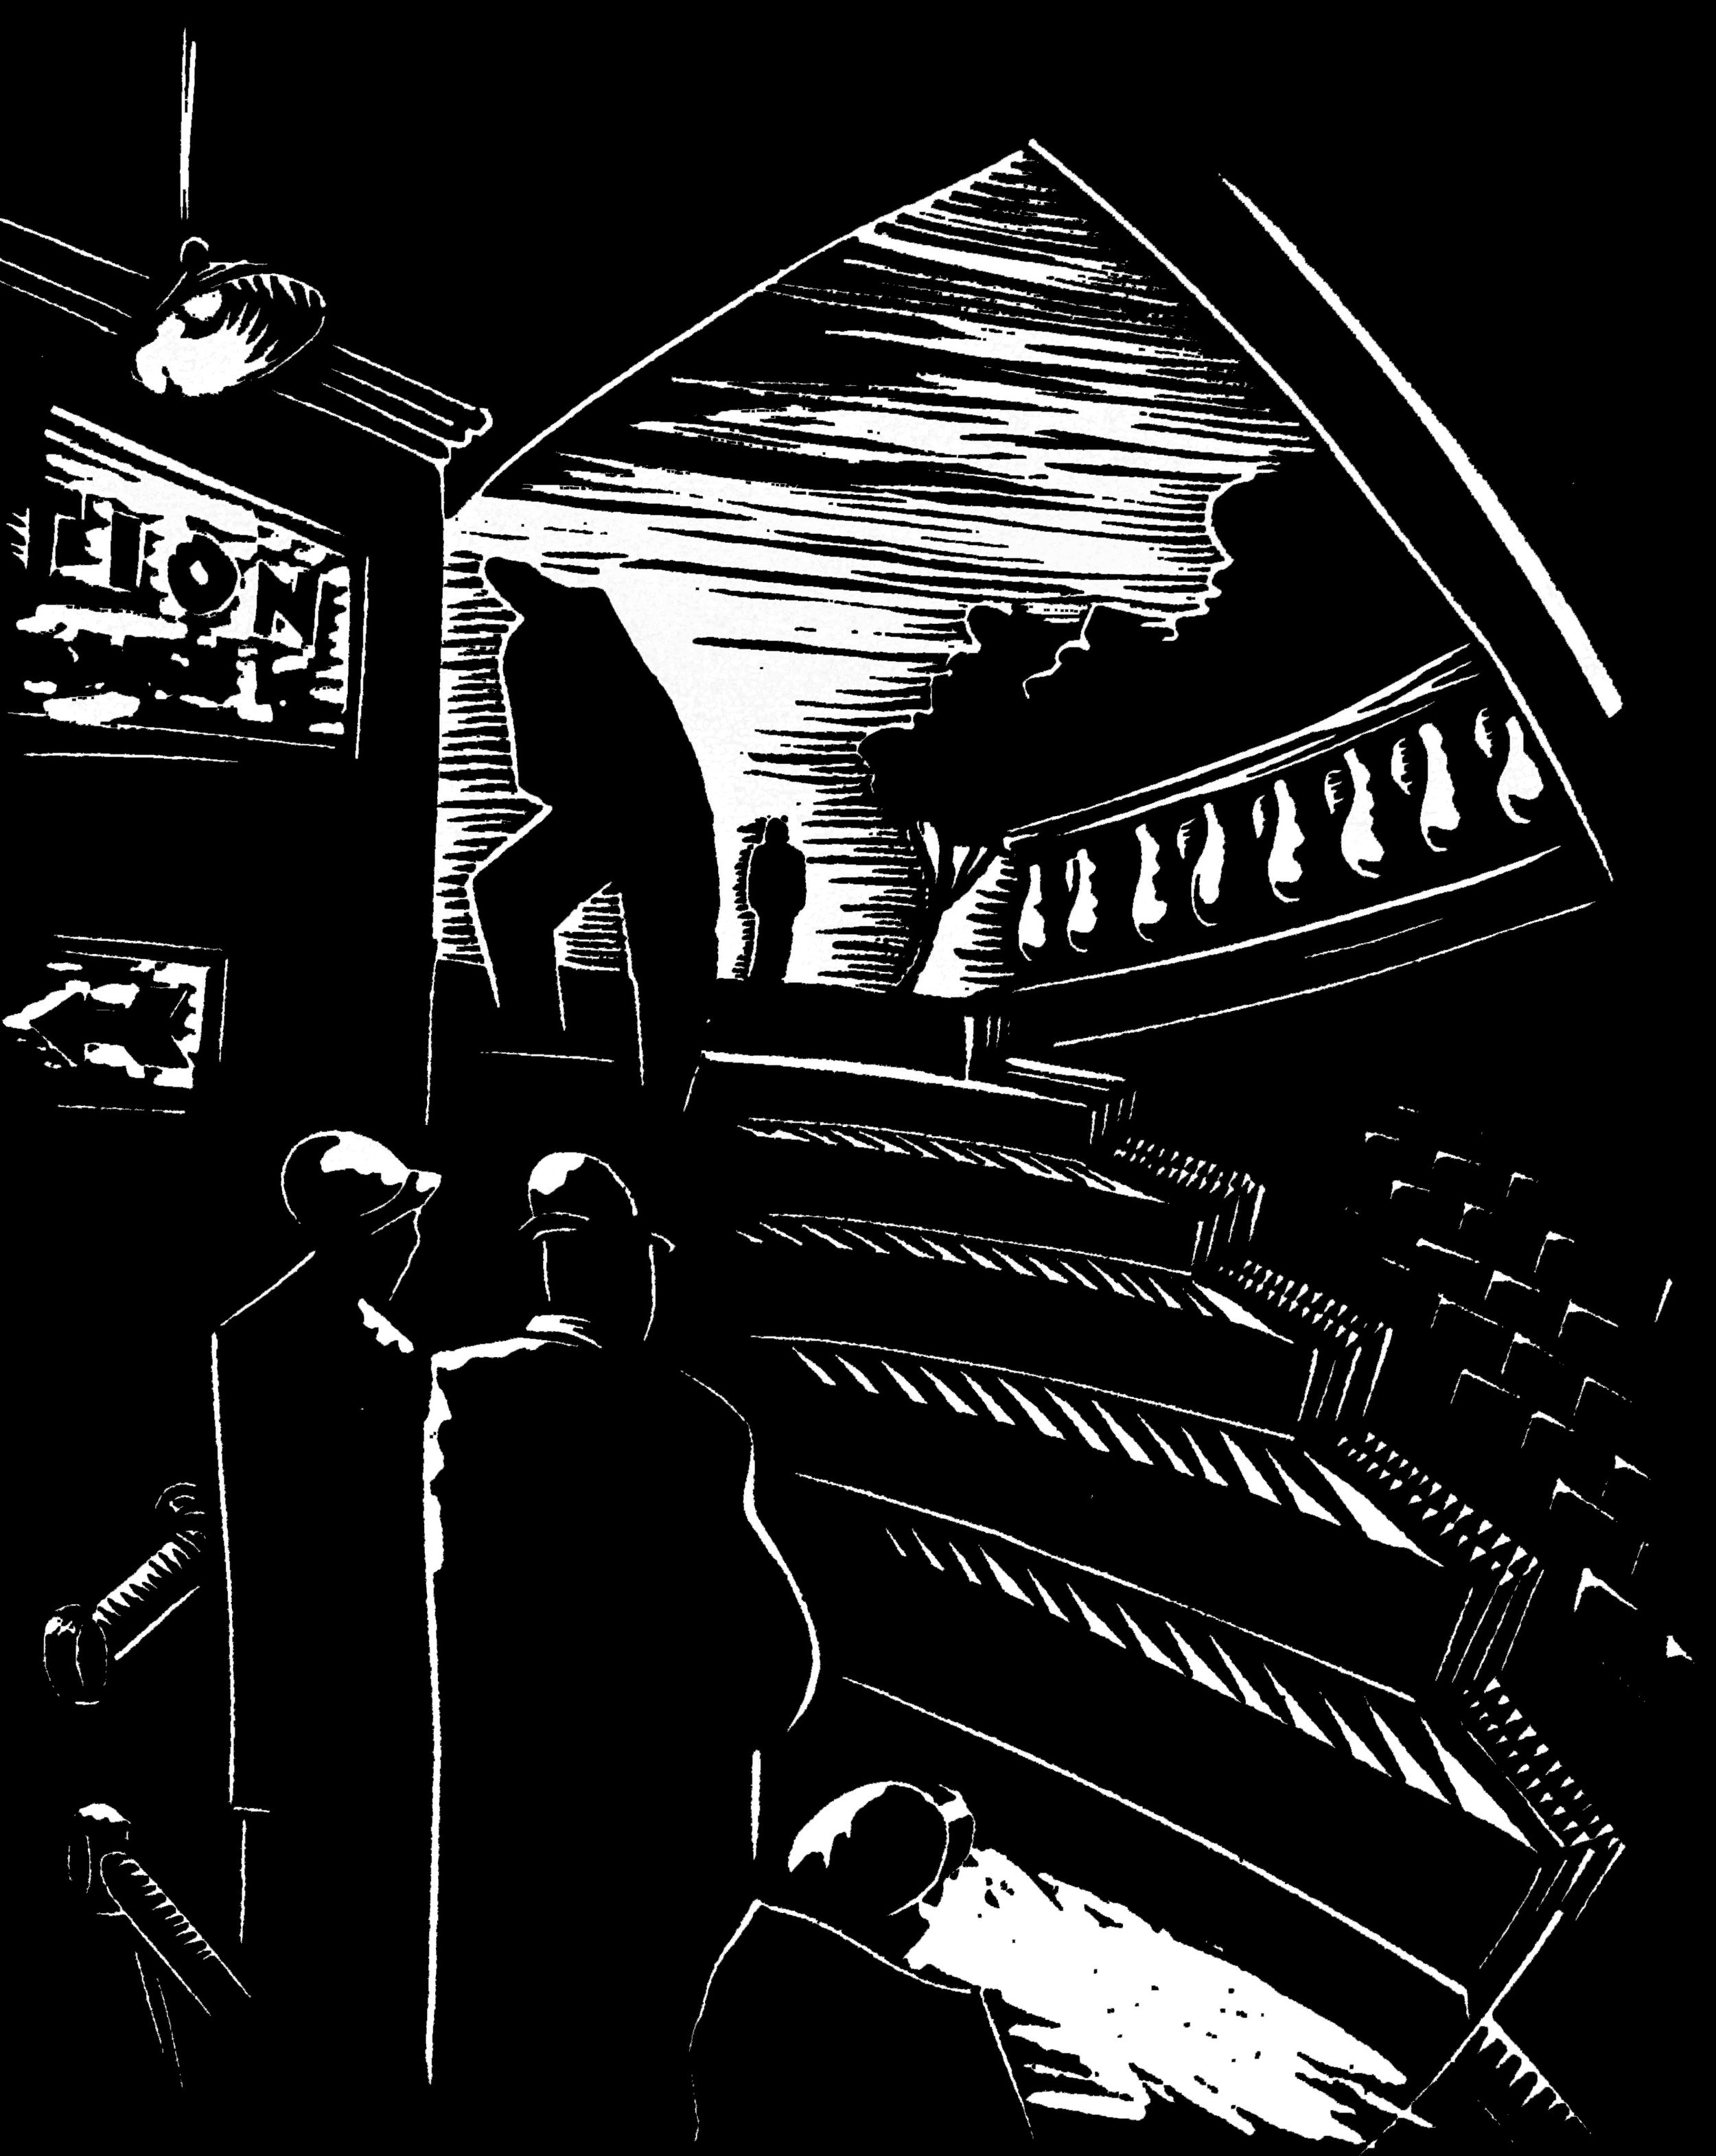 Subway steps linocut.jpg